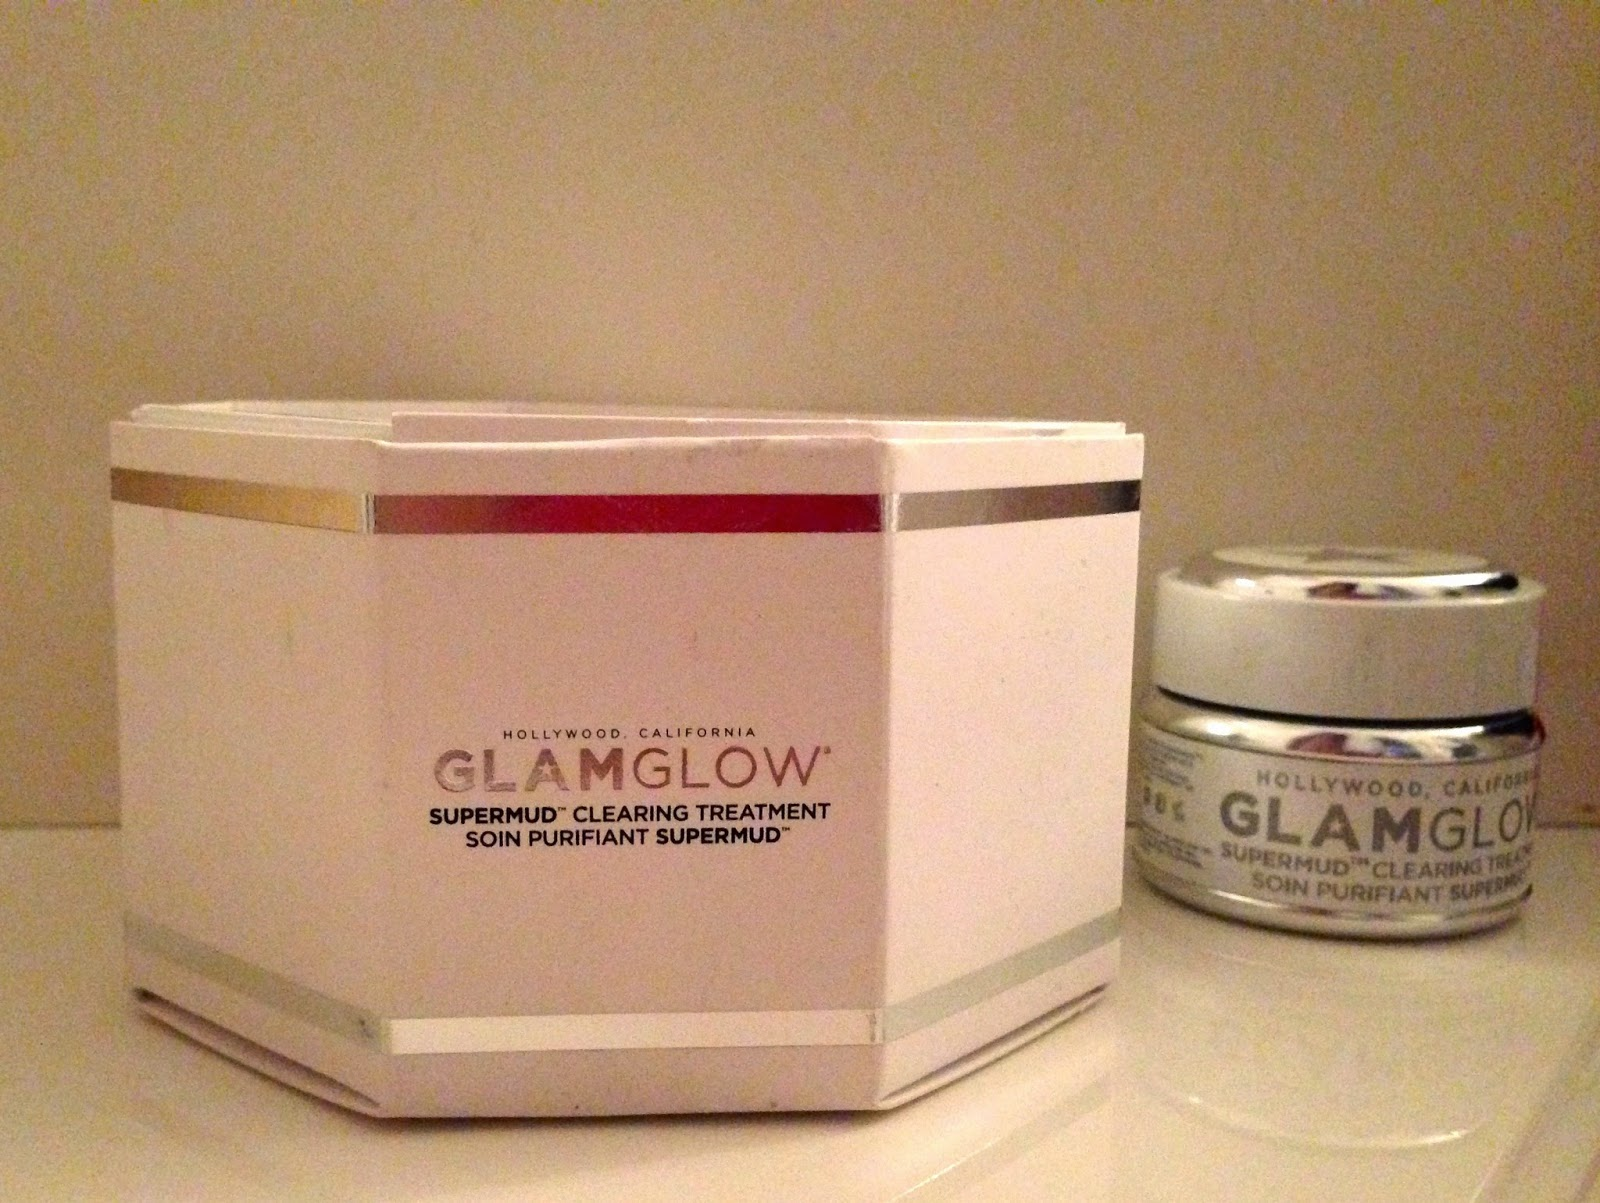 Glam Glow Supermud Clearing Treatment What To Dab On Now Glamglow 50 Gr I Dont Really Think That The Celebrities Love It Or Is A Staple At Backstage Yes An Effective Mud Mask But Isnt Worthy Of Cost 69